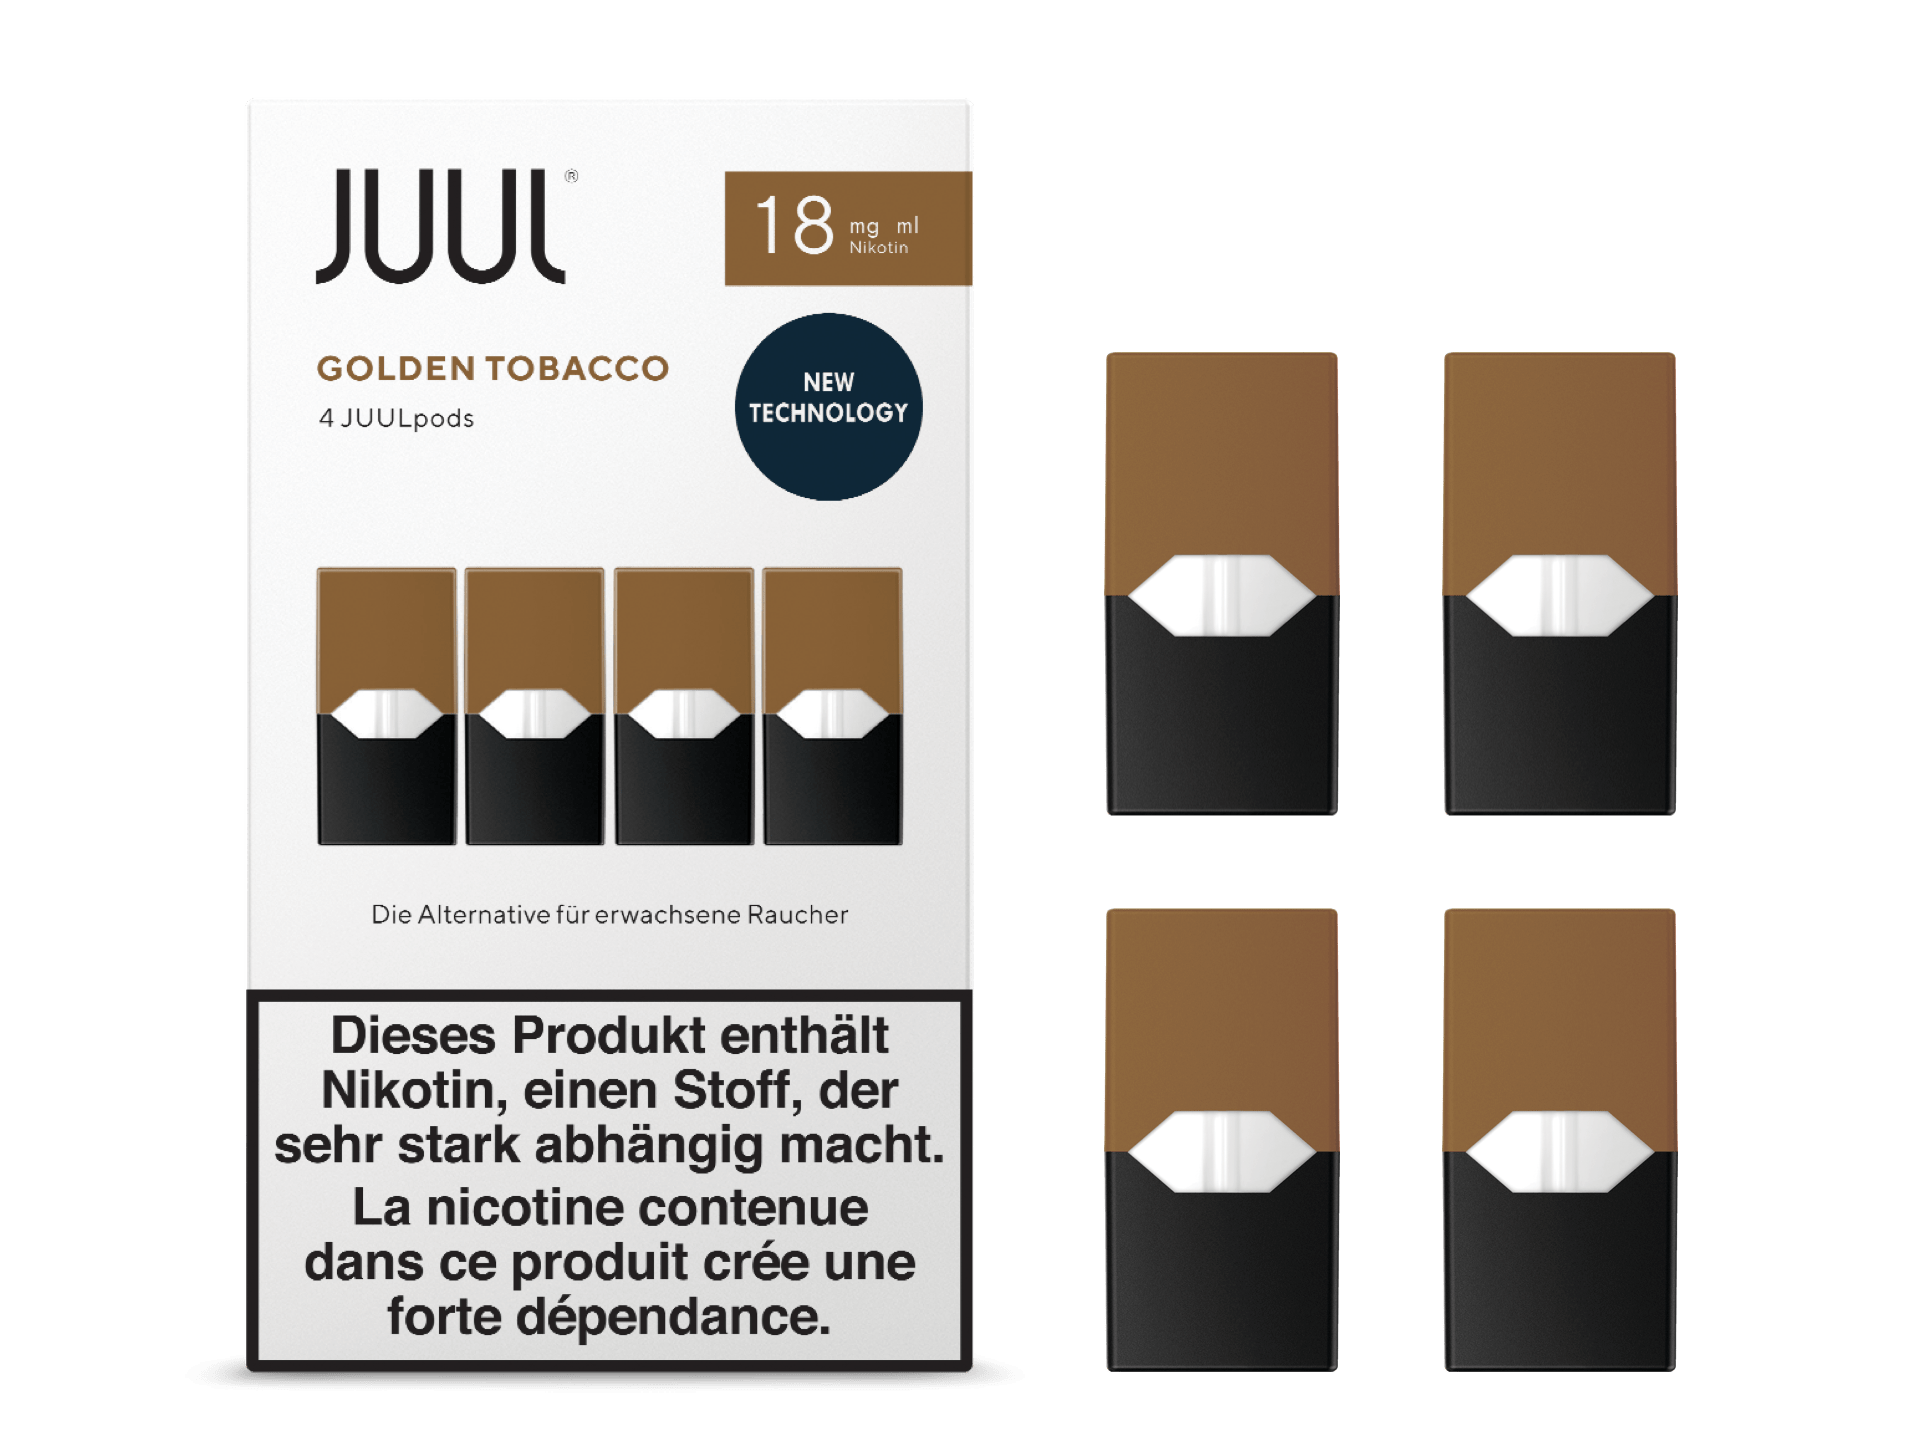 Juul - Golden Tobacco (4pack)